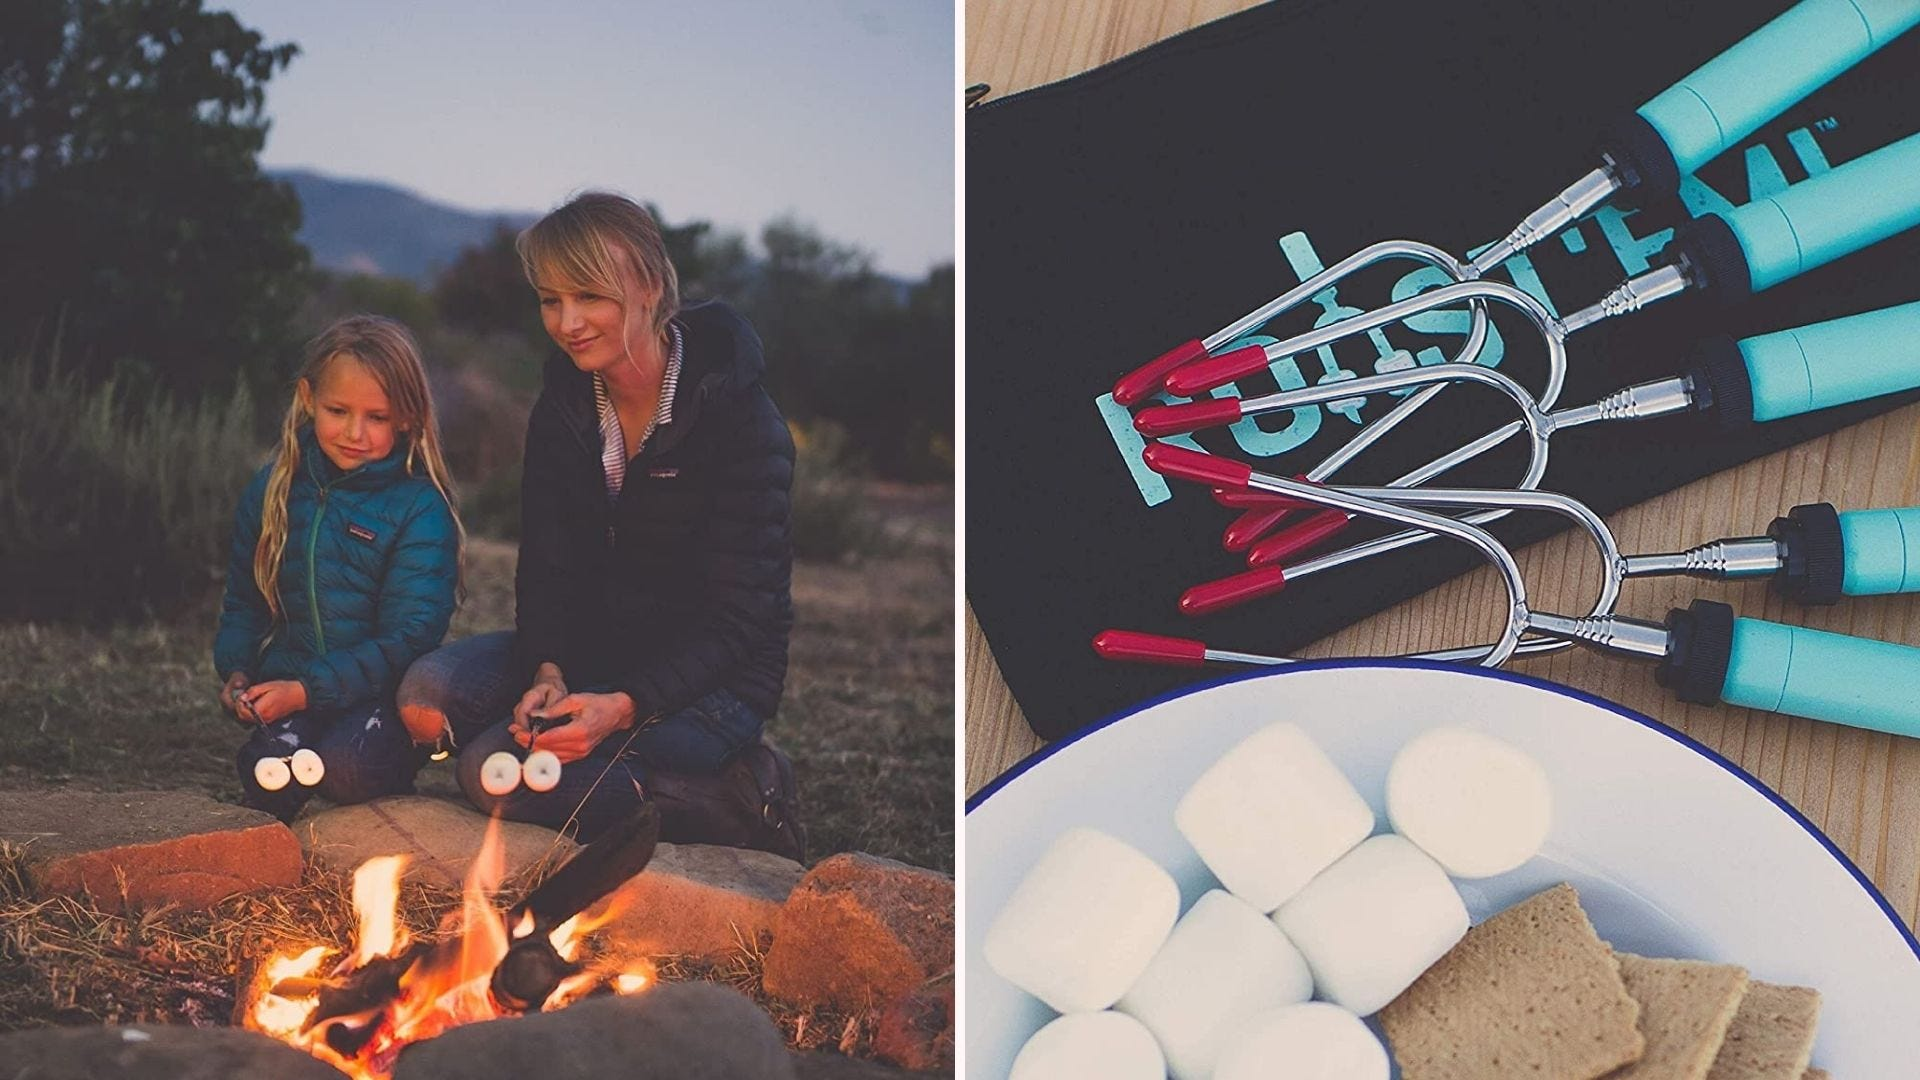 Two images: The left image features a mother and her daughter roasting marshmallows with a Jolly Green marshmallow sticks and the right image features a pack of new marshmallow sticks along side of a plate of s'mores ingredients.